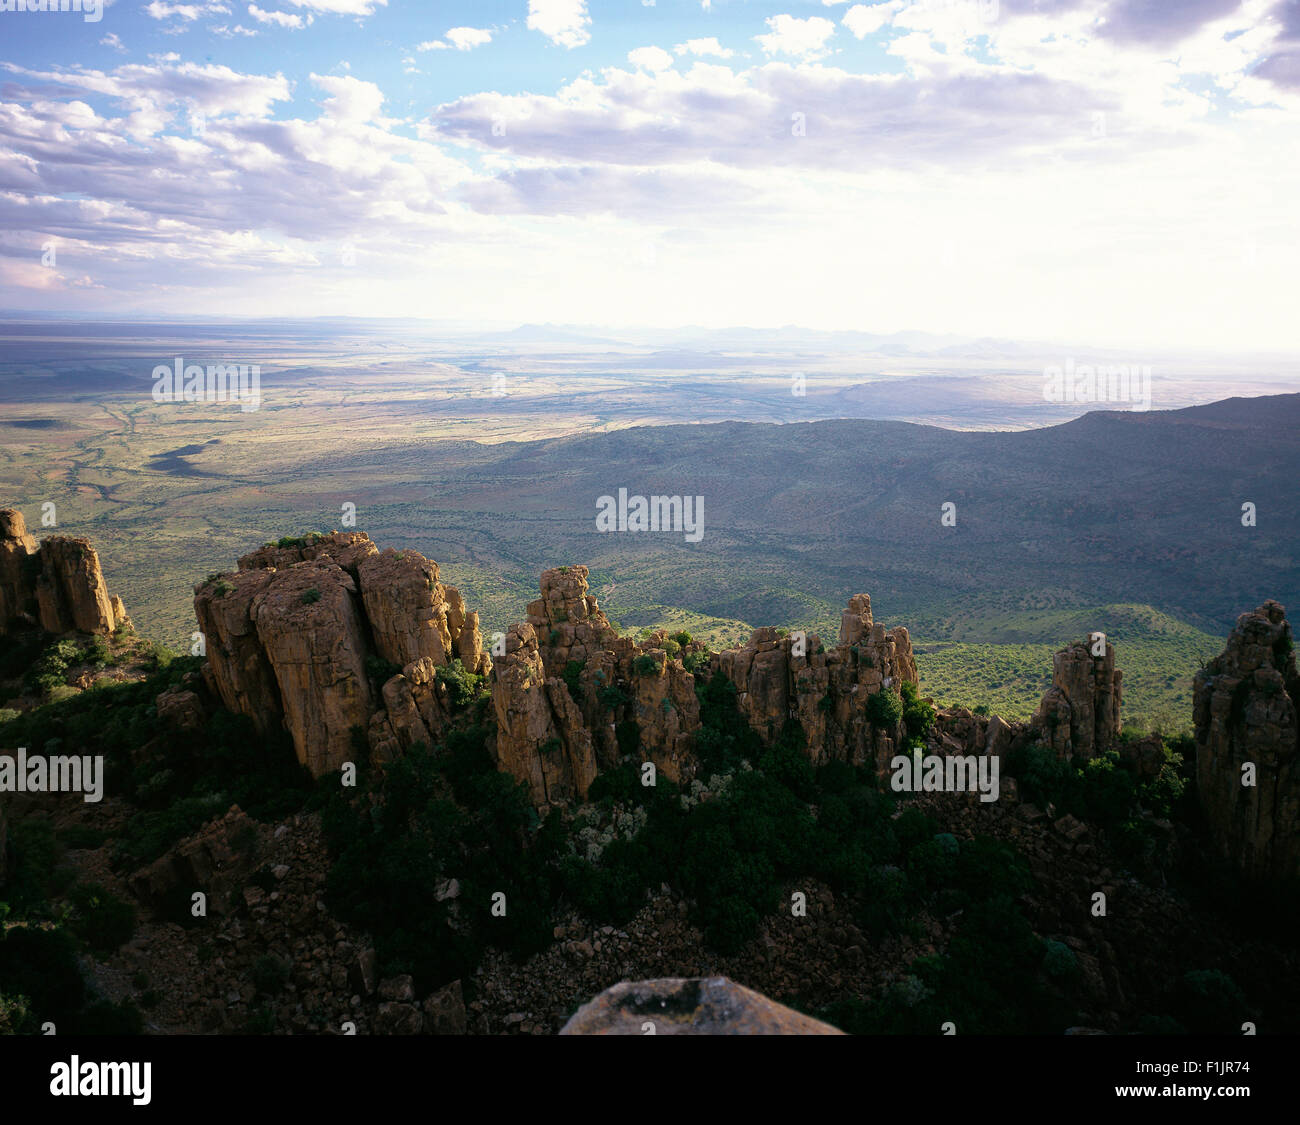 Petrified Trees Valley of Desolation Graaff Reinet, Eastern Cape, South Africa - Stock Image